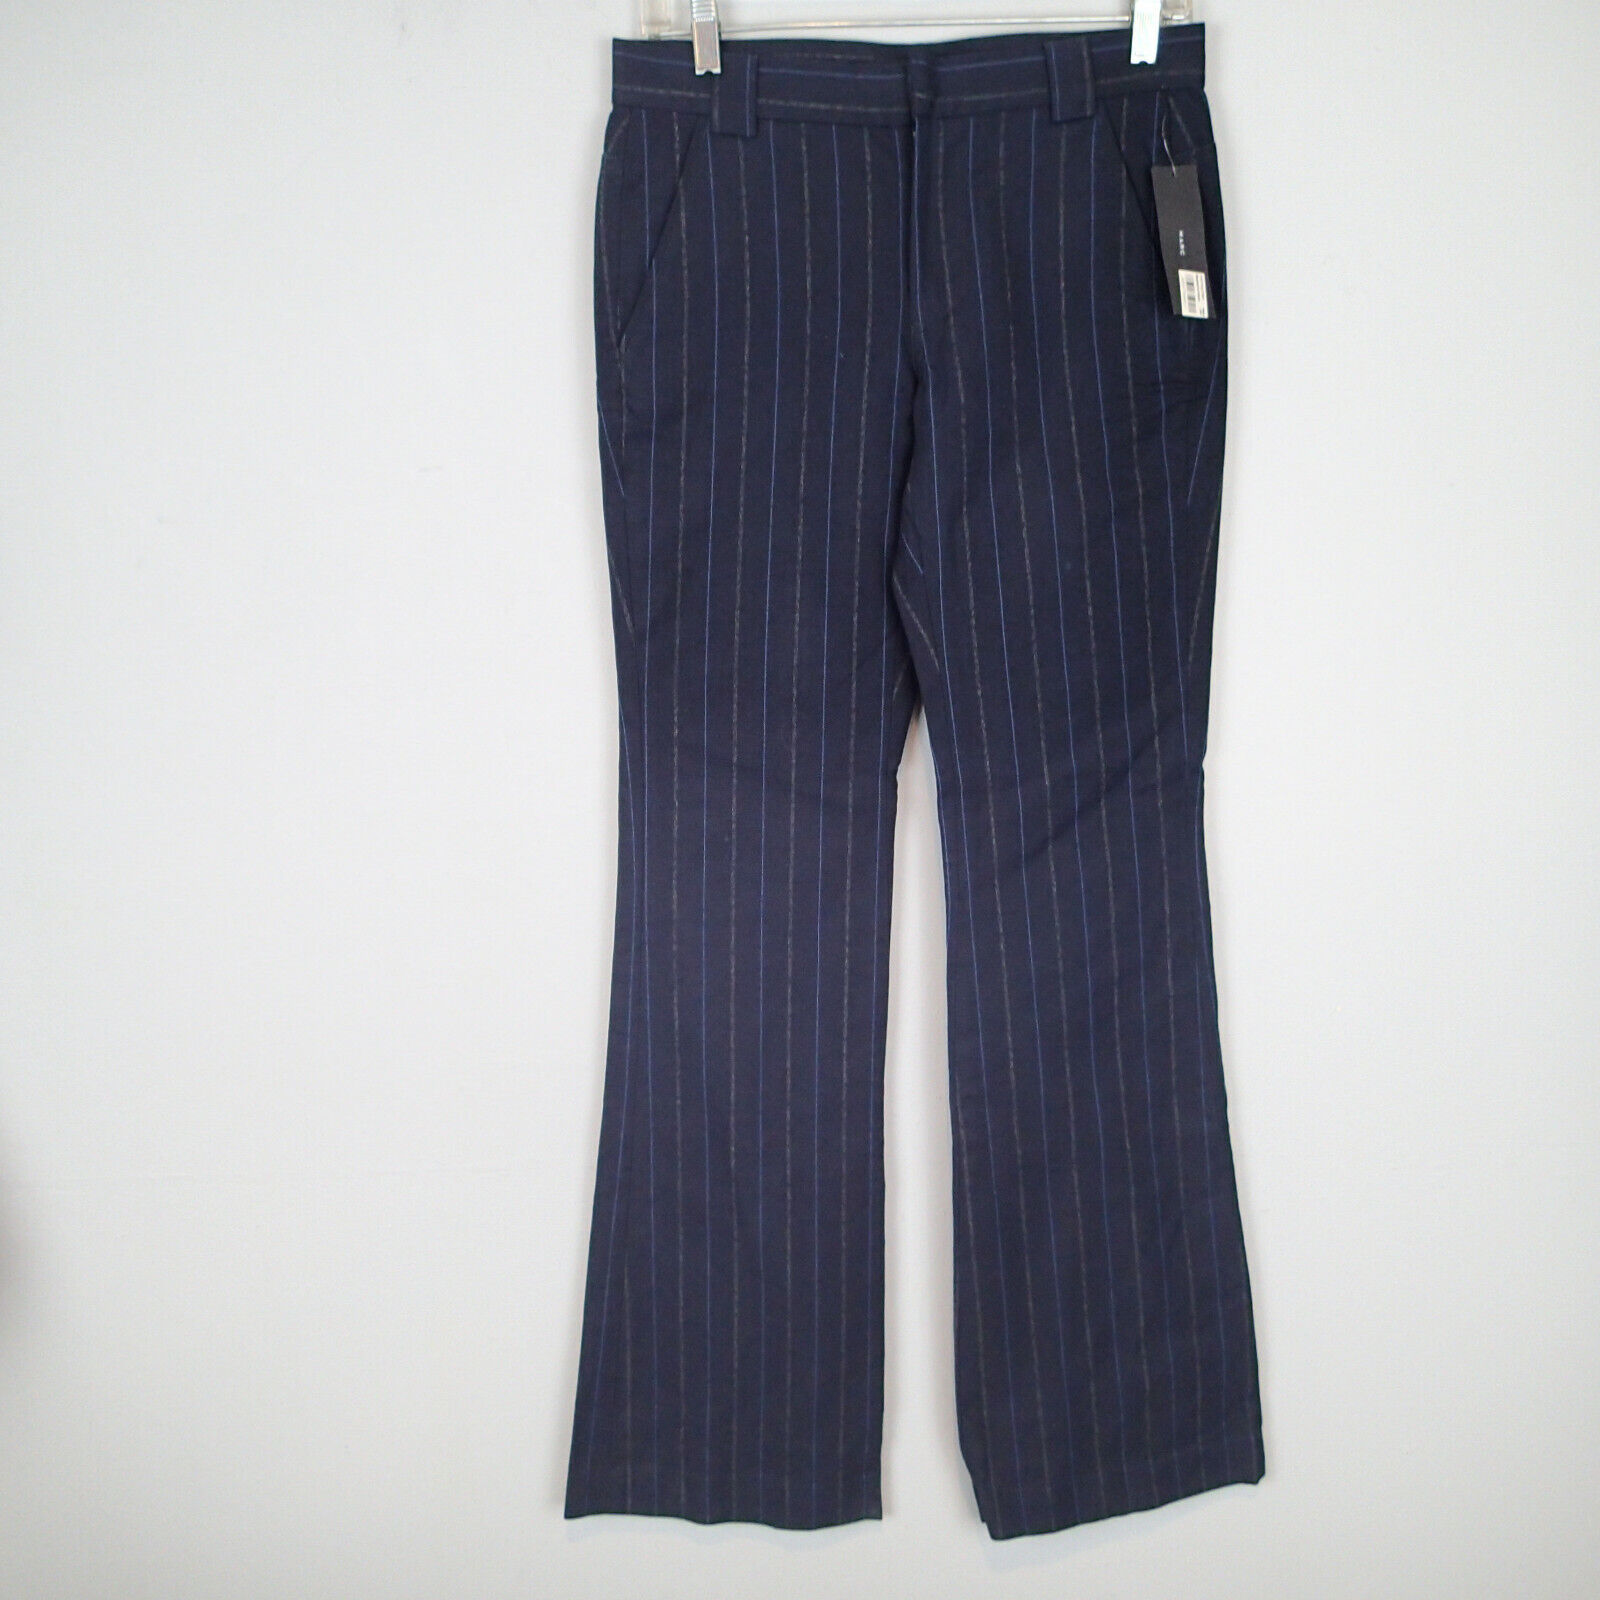 Marc Jacobs Womens Pants Sz 2 Navy bluee Striped Casual Trousers Cotton b1